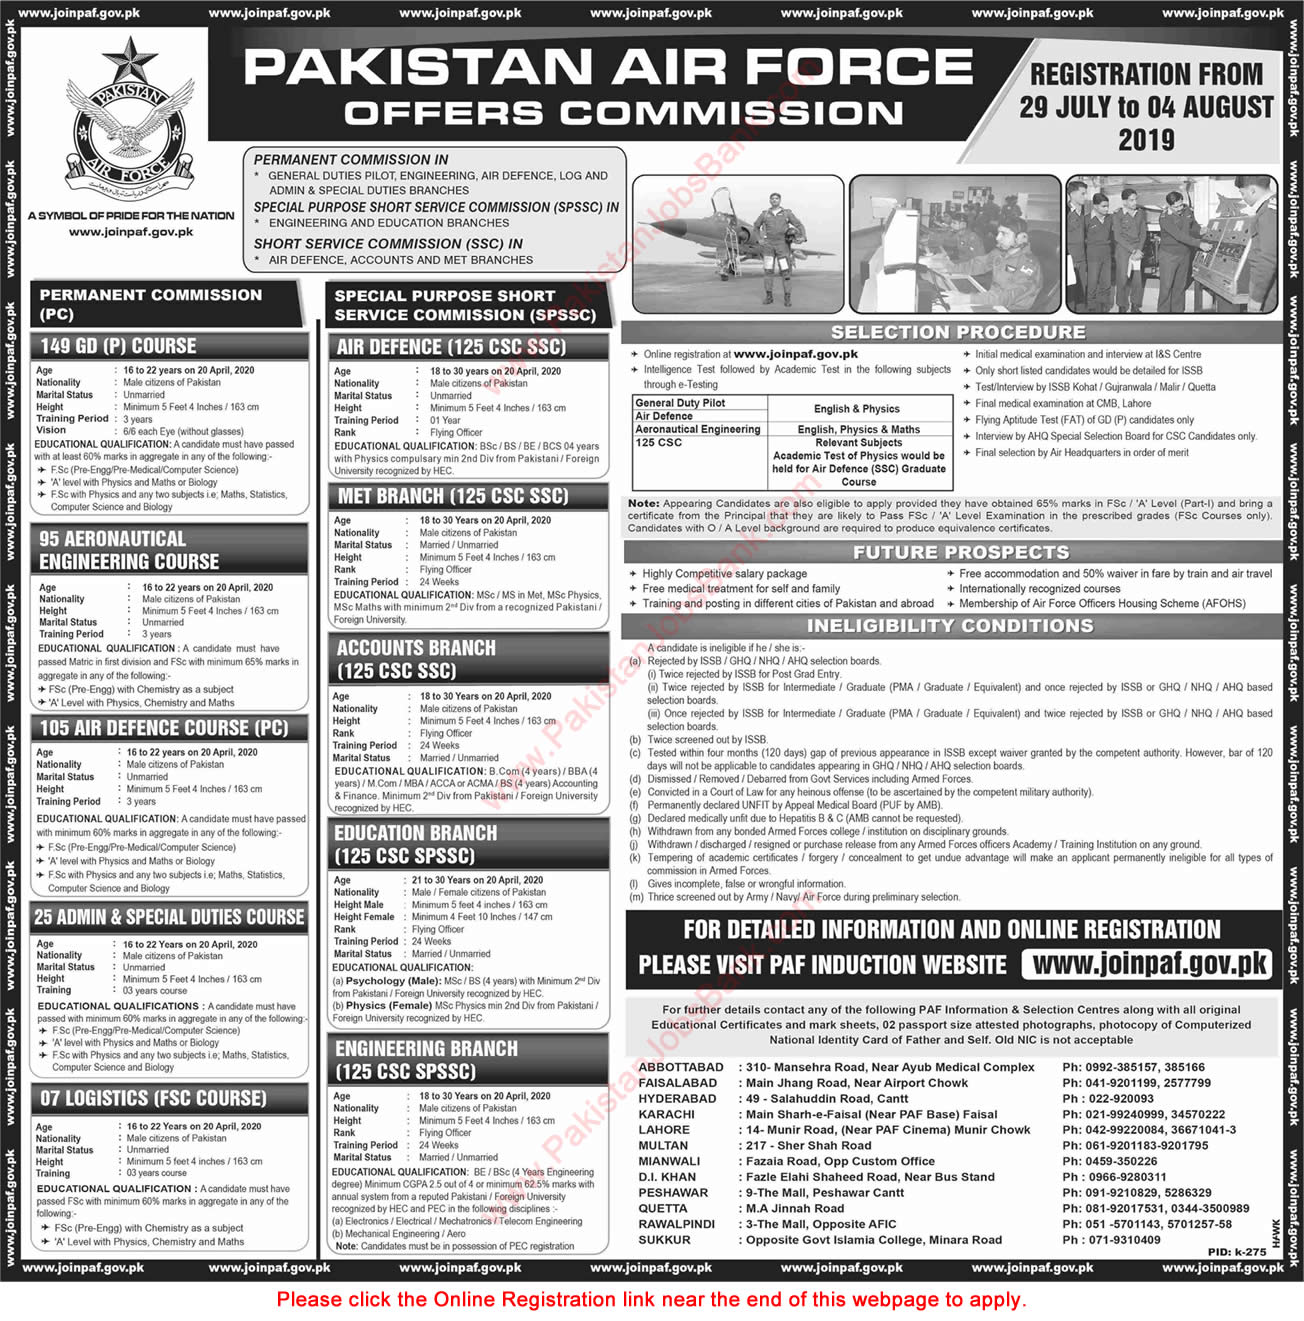 Join Pakistan Air Force July 2019 August Online Registration SPSSC, SSC & Permanent Commission Latest